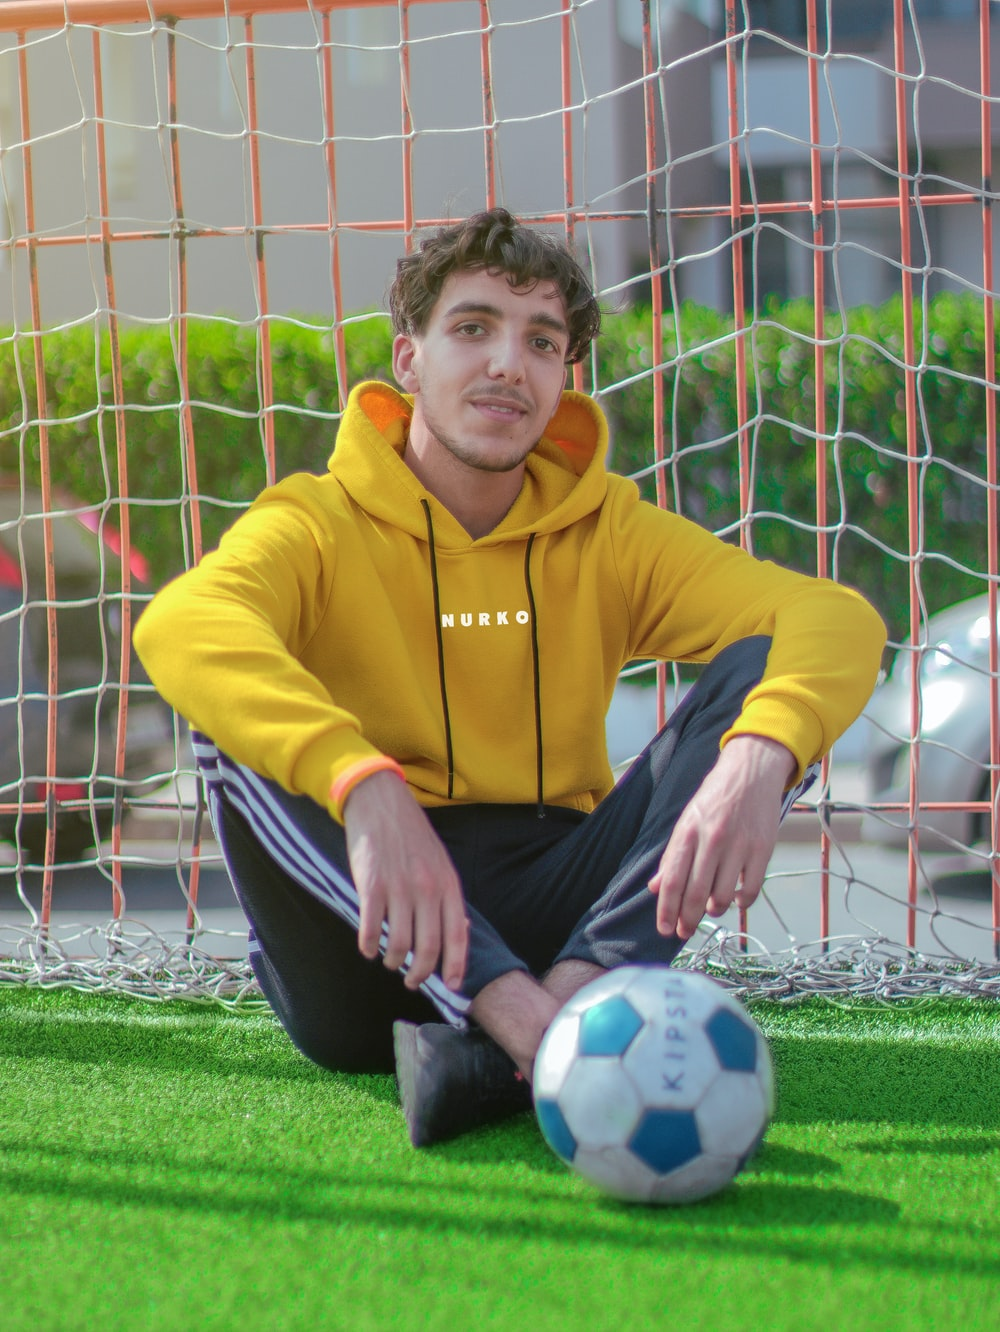 boy in yellow sweater and black pants sitting on soccer goal net